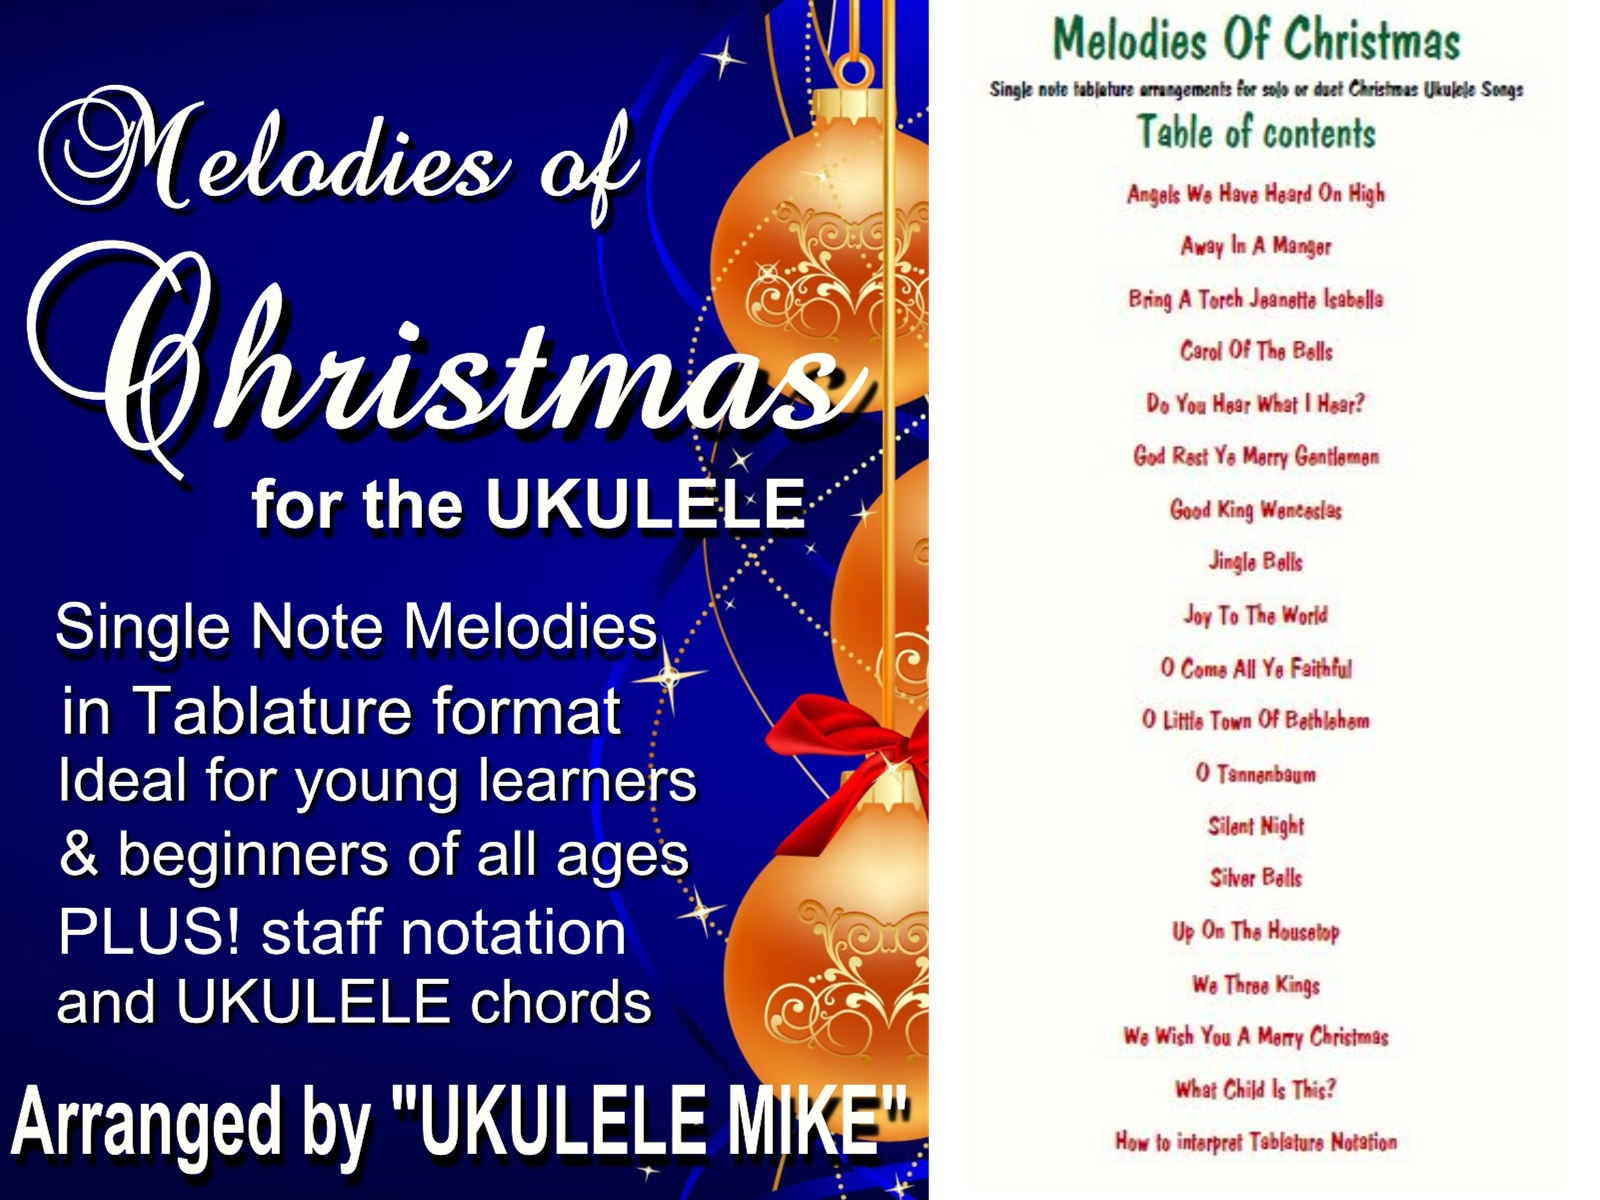 classic standards of christmas now available in single note arrangements melodies of christmas perfect for newbie tablature players melodies of - Christmas Songs Classic